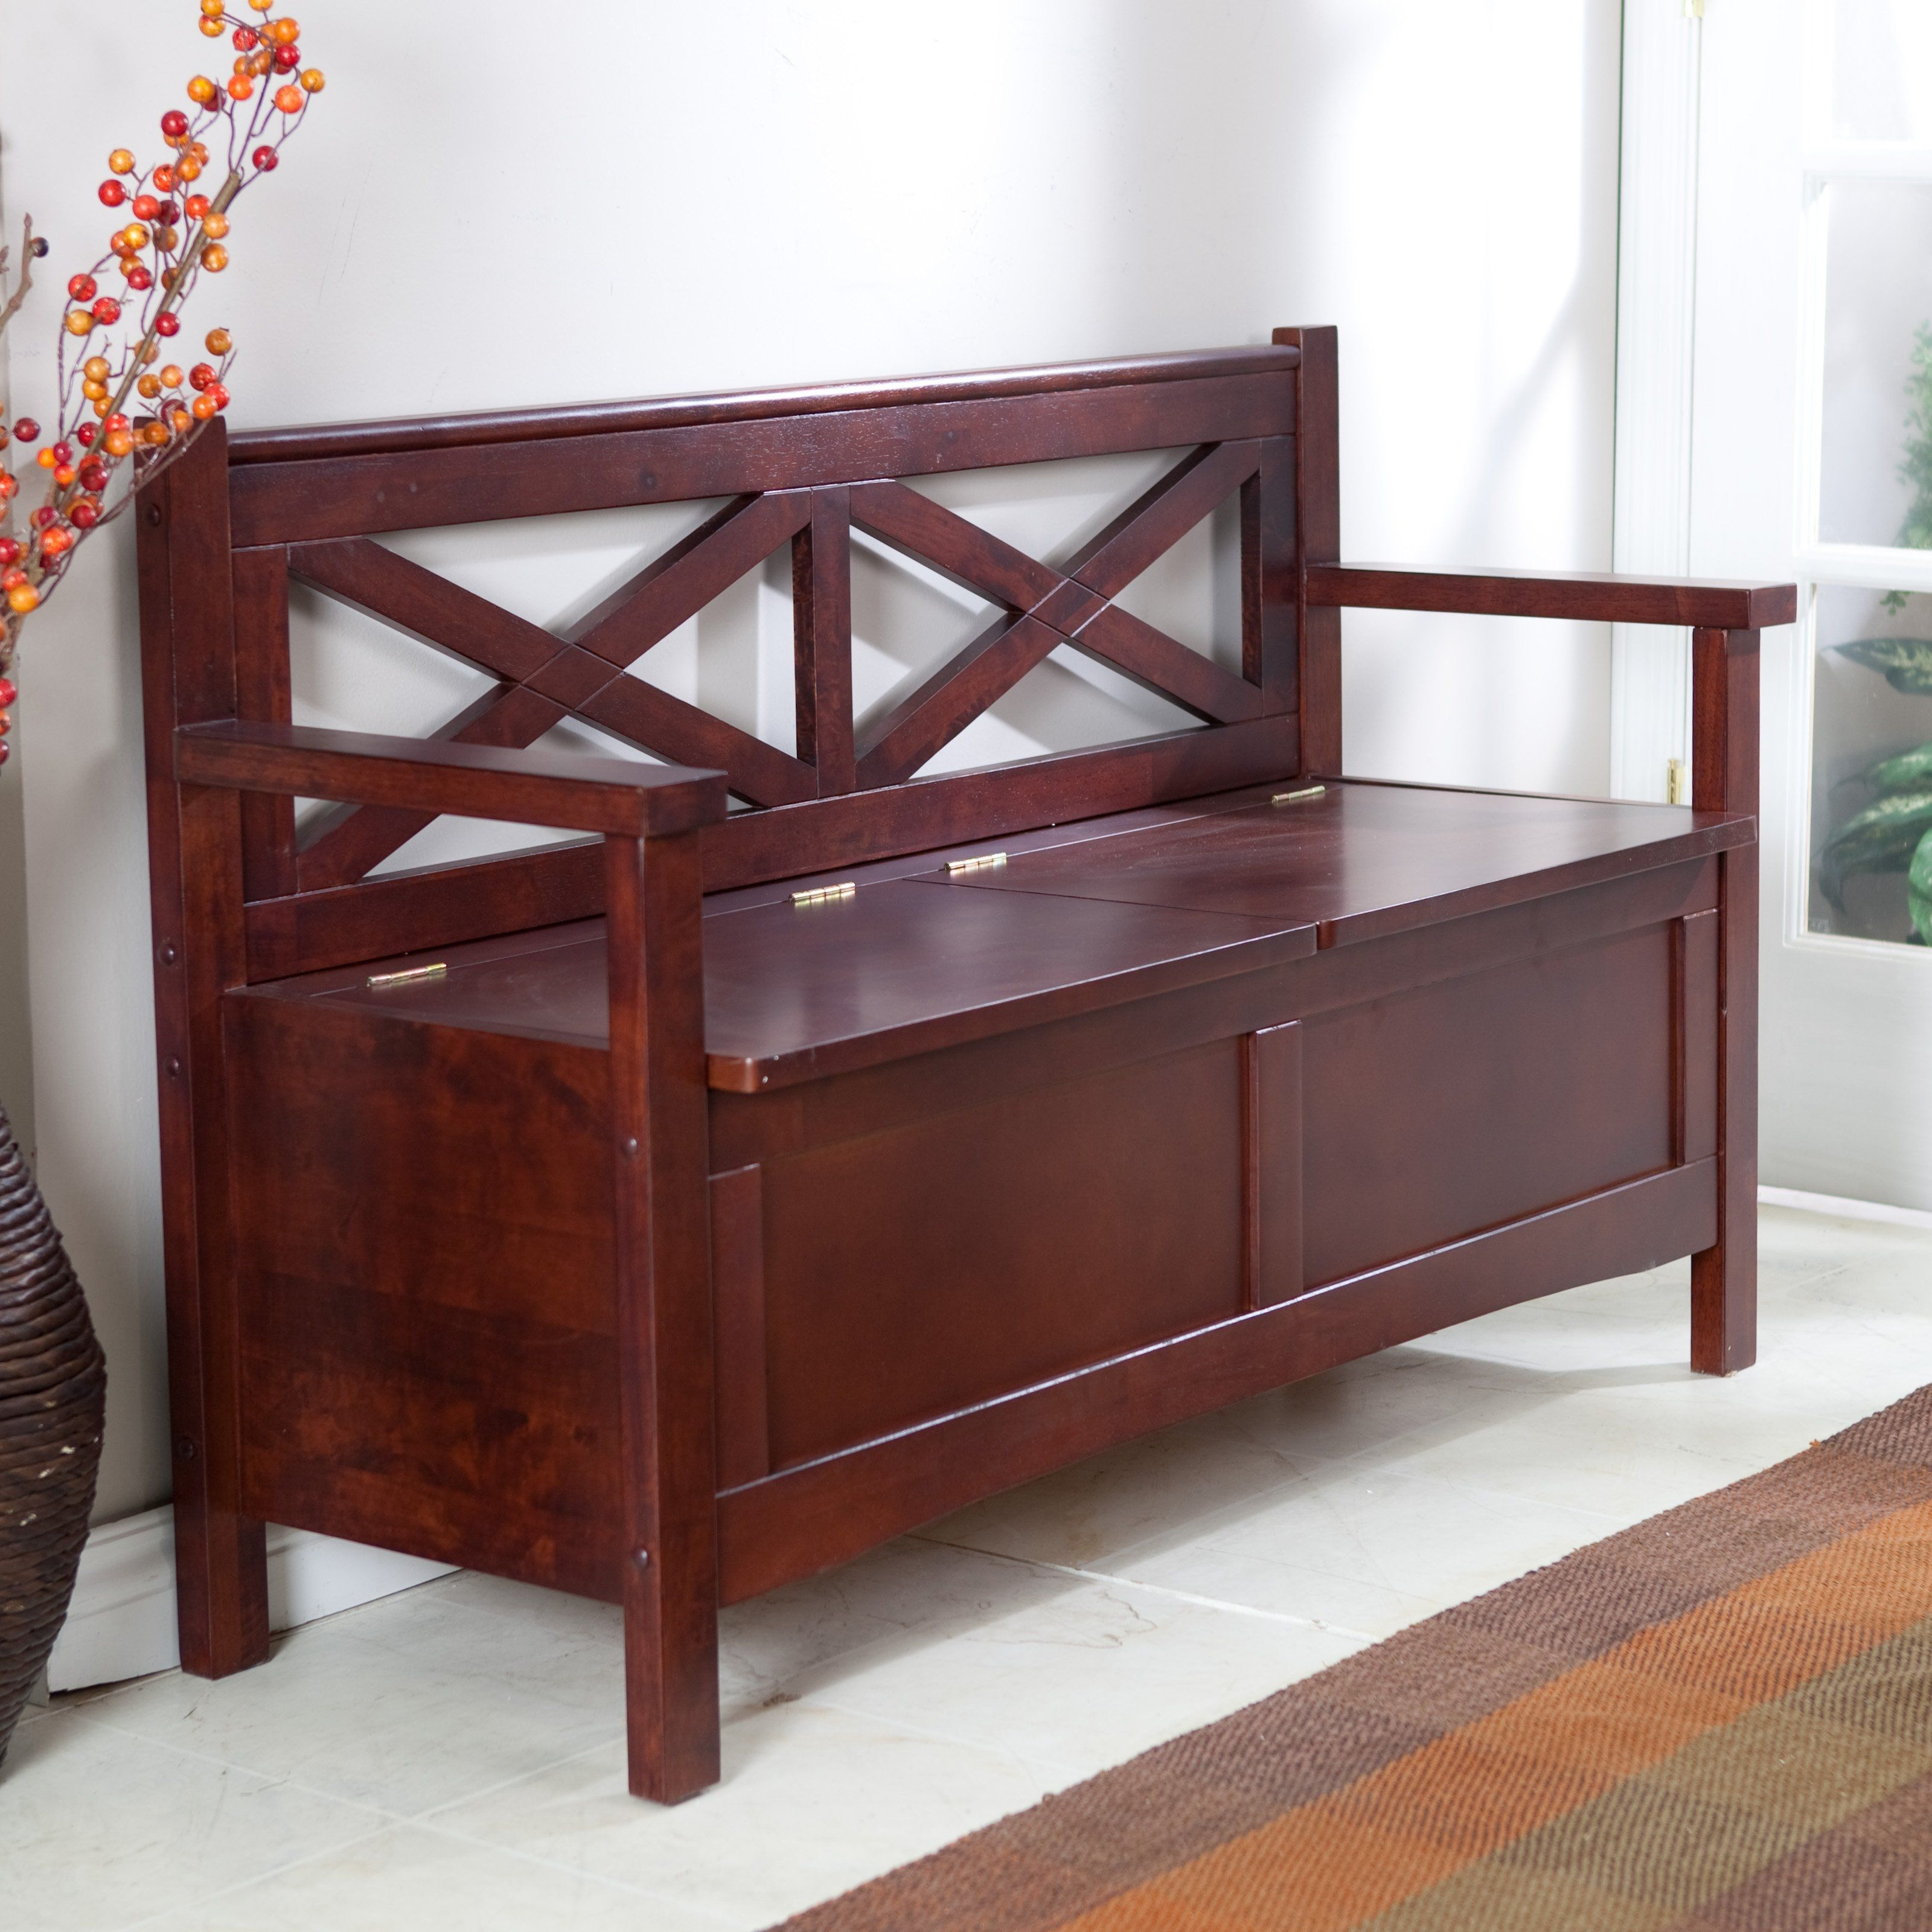 Benches With Backs Exterior Inspiring Wooden Storage Wooden Storage Bench Indoor Storage Bench Storage Bench Seating